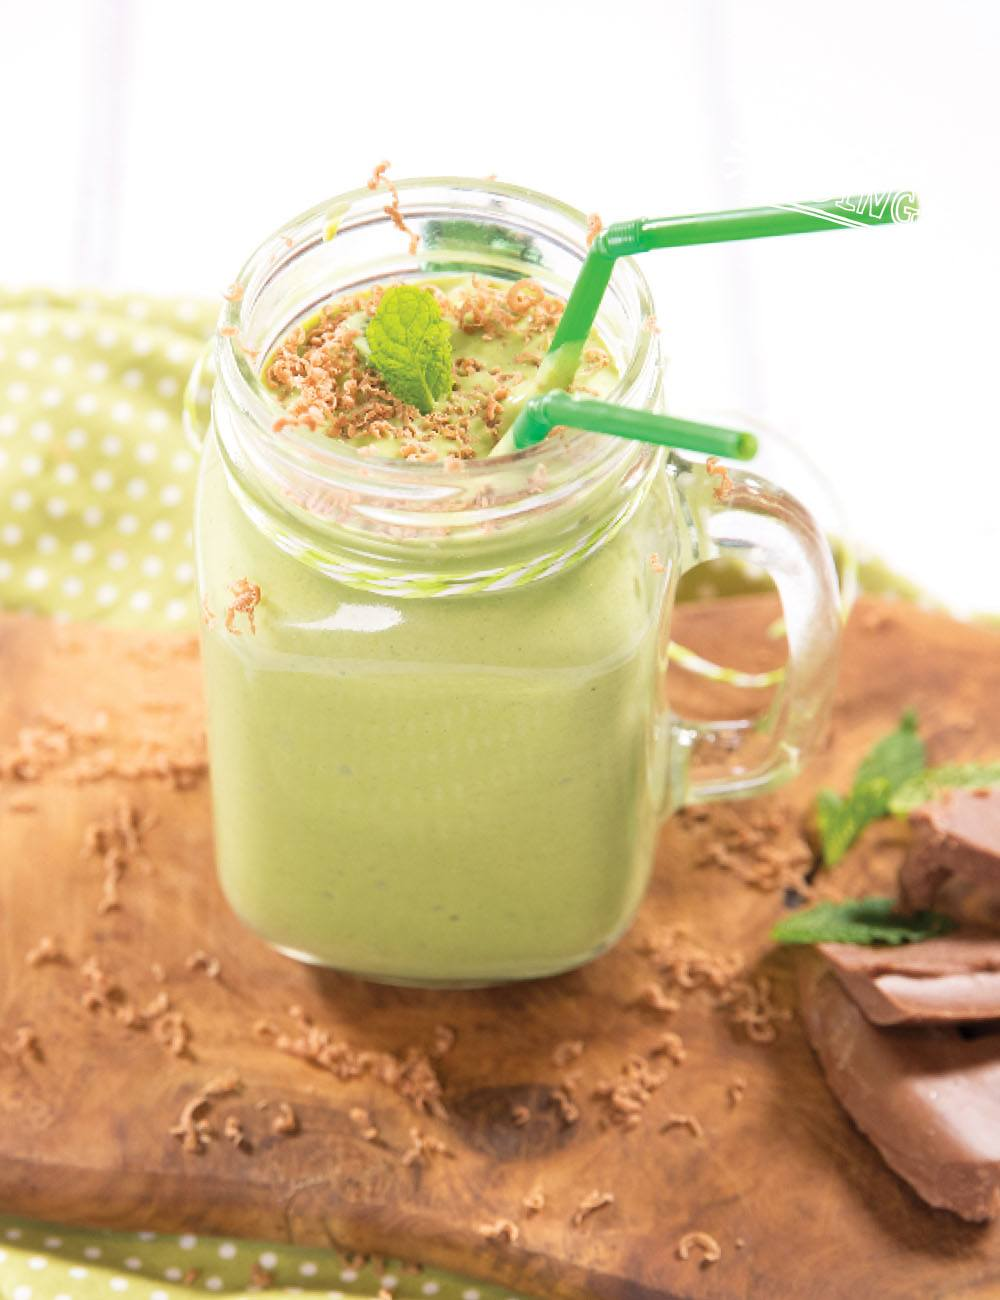 Healthy Shamrock Shake Recipe for kids | Healthy treats for kids. Main recipe image. This Shamrock shake is creamy, delicious and tastes like ice cream yet it contains only goodness and is super healthy for your little ones.